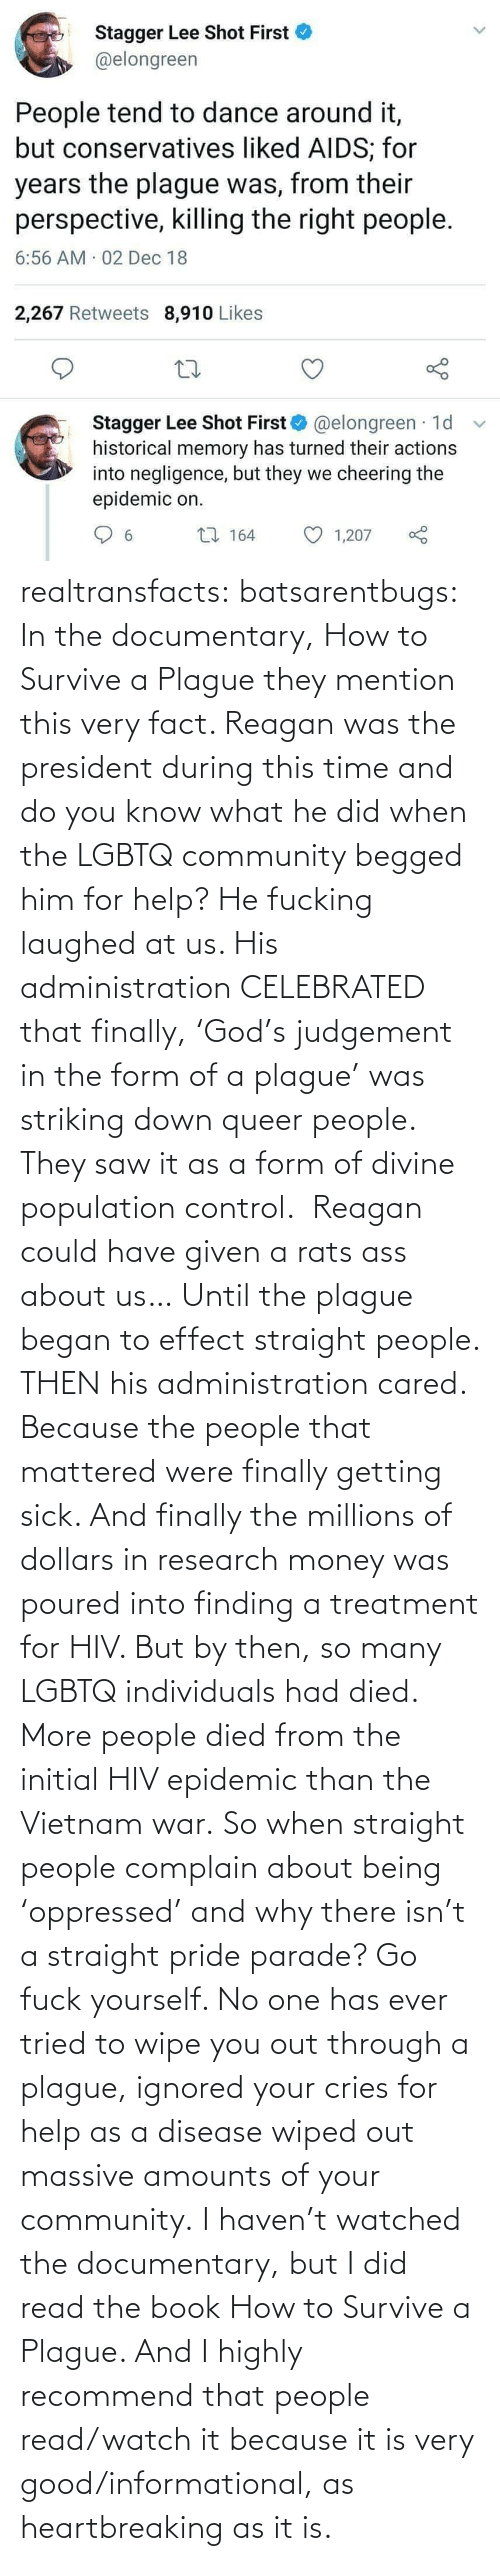 you know what: Stagger Lee Shot First  @elongreen  People tend to dance around it,  but conservatives liked AIDS; for  years the plague was, from their  perspective, killing the right people.  6:56 AM 02 Dec 18  2,267 Retweets 8,910 Likes  Stagger Lee Shot First O @elongreen · 1d  historical memory has turned their actions  into negligence, but they we cheering the  epidemic on.  27 164  1,207  6. realtransfacts:  batsarentbugs:  In the documentary, How to Survive a Plague they mention this very fact. Reagan was the president during this time and do you know what he did when the LGBTQ community begged him for help? He fucking laughed at us. His administration CELEBRATED that finally, 'God's judgement in the form of a plague' was striking down queer people.  They saw it as a form of divine population control.  Reagan could have given a rats ass about us… Until the plague began to effect straight people. THEN his administration cared. Because the people that mattered were finally getting sick. And finally the millions of dollars in research money was poured into finding a treatment for HIV. But by then, so many LGBTQ individuals had died.  More people died from the initial HIV epidemic than the Vietnam war. So when straight people complain about being 'oppressed' and why there isn't a straight pride parade? Go fuck yourself. No one has ever tried to wipe you out through a plague, ignored your cries for help as a disease wiped out massive amounts of your community.  I haven't watched the documentary, but I did read the book  How to Survive a Plague. And I highly recommend that people read/watch it because it is very good/informational, as heartbreaking as it is.